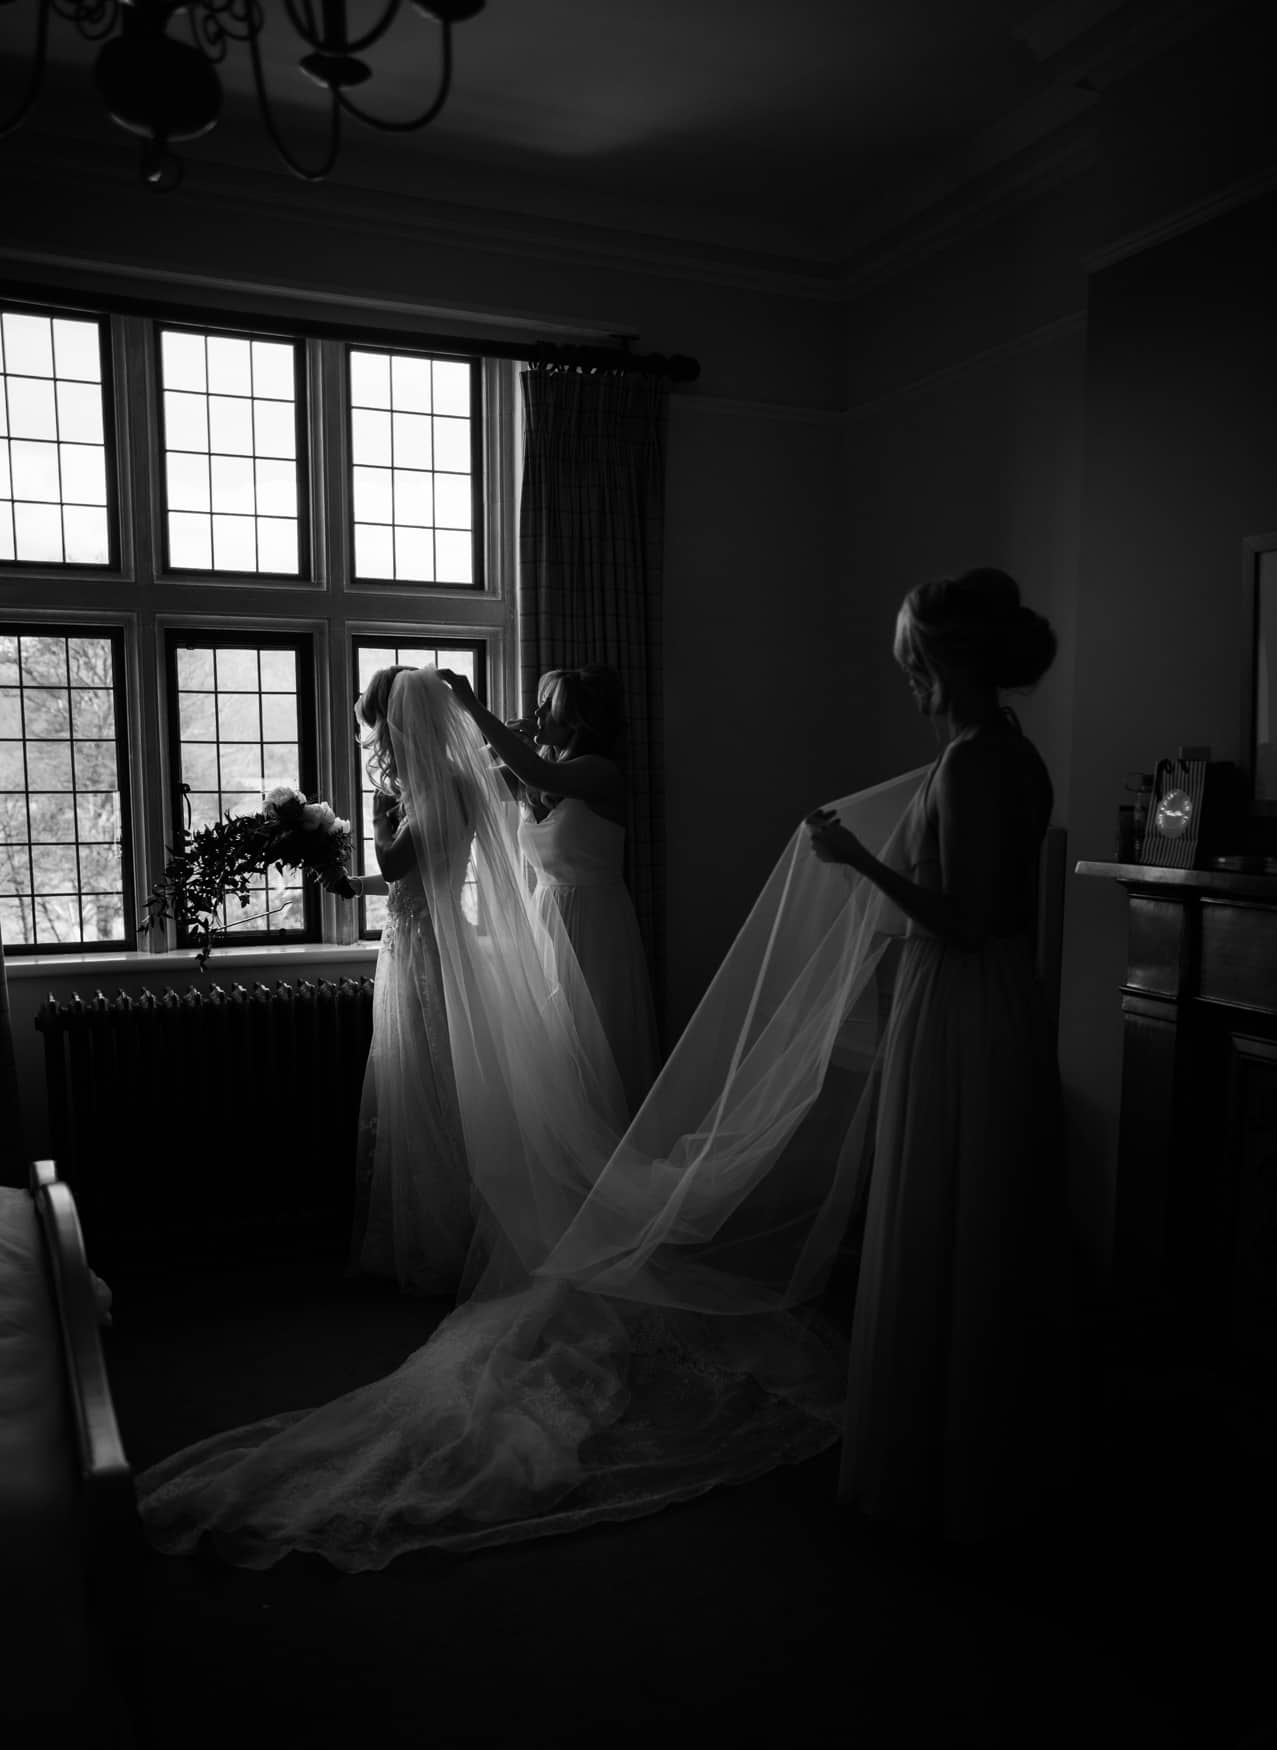 bridesmaids putting the veil on the bride